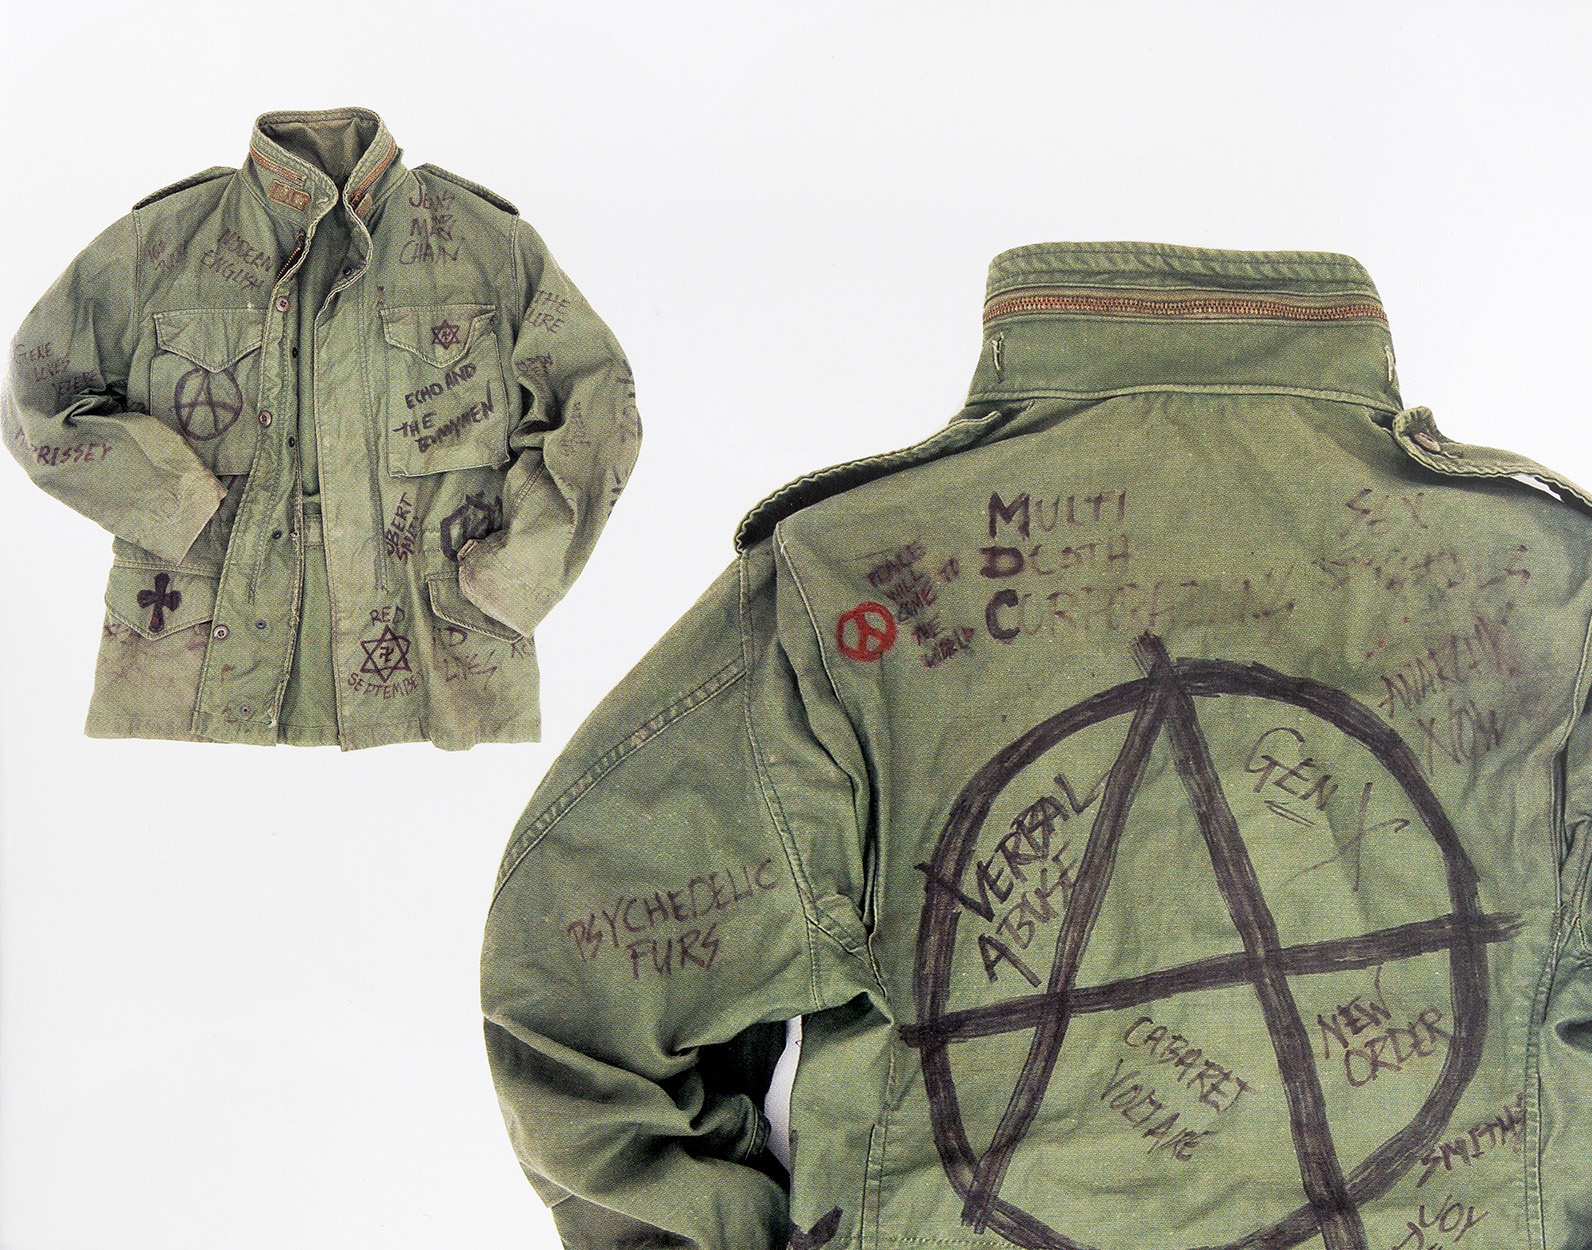 M-65 Field Jacket decorated with the names of many underground bands ce241141110